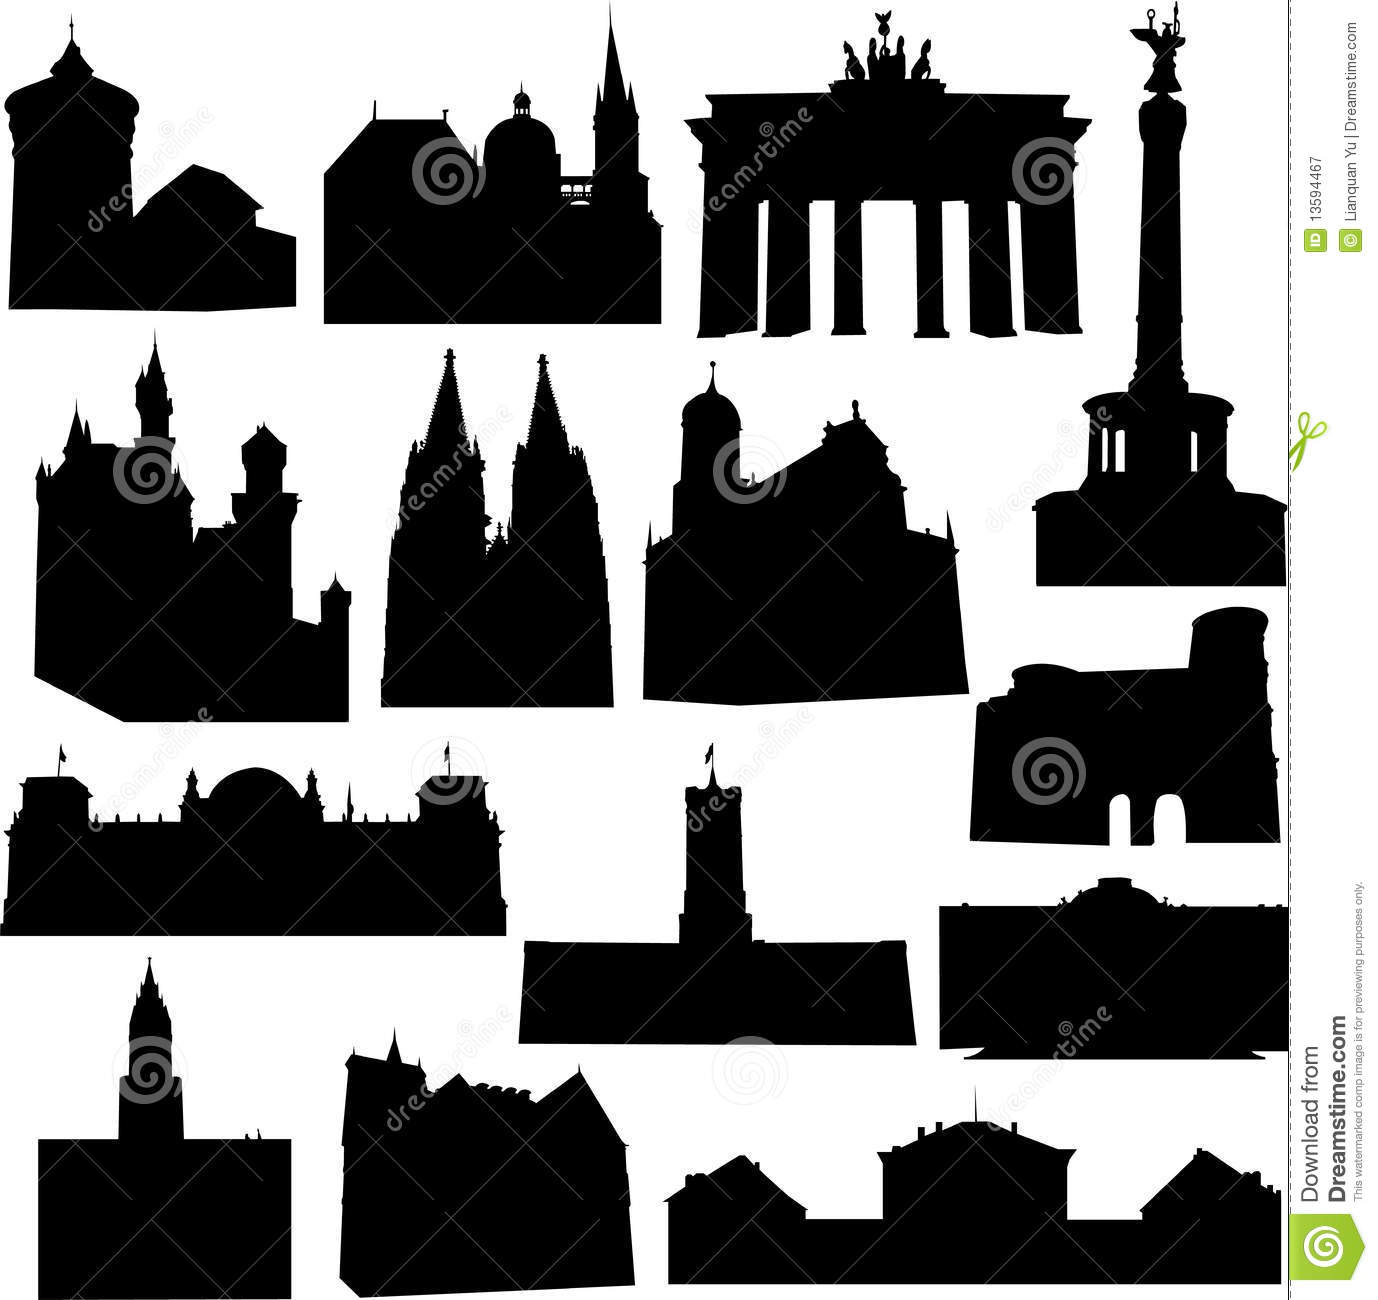 augsburg cartoons illustrations vector stock images 9